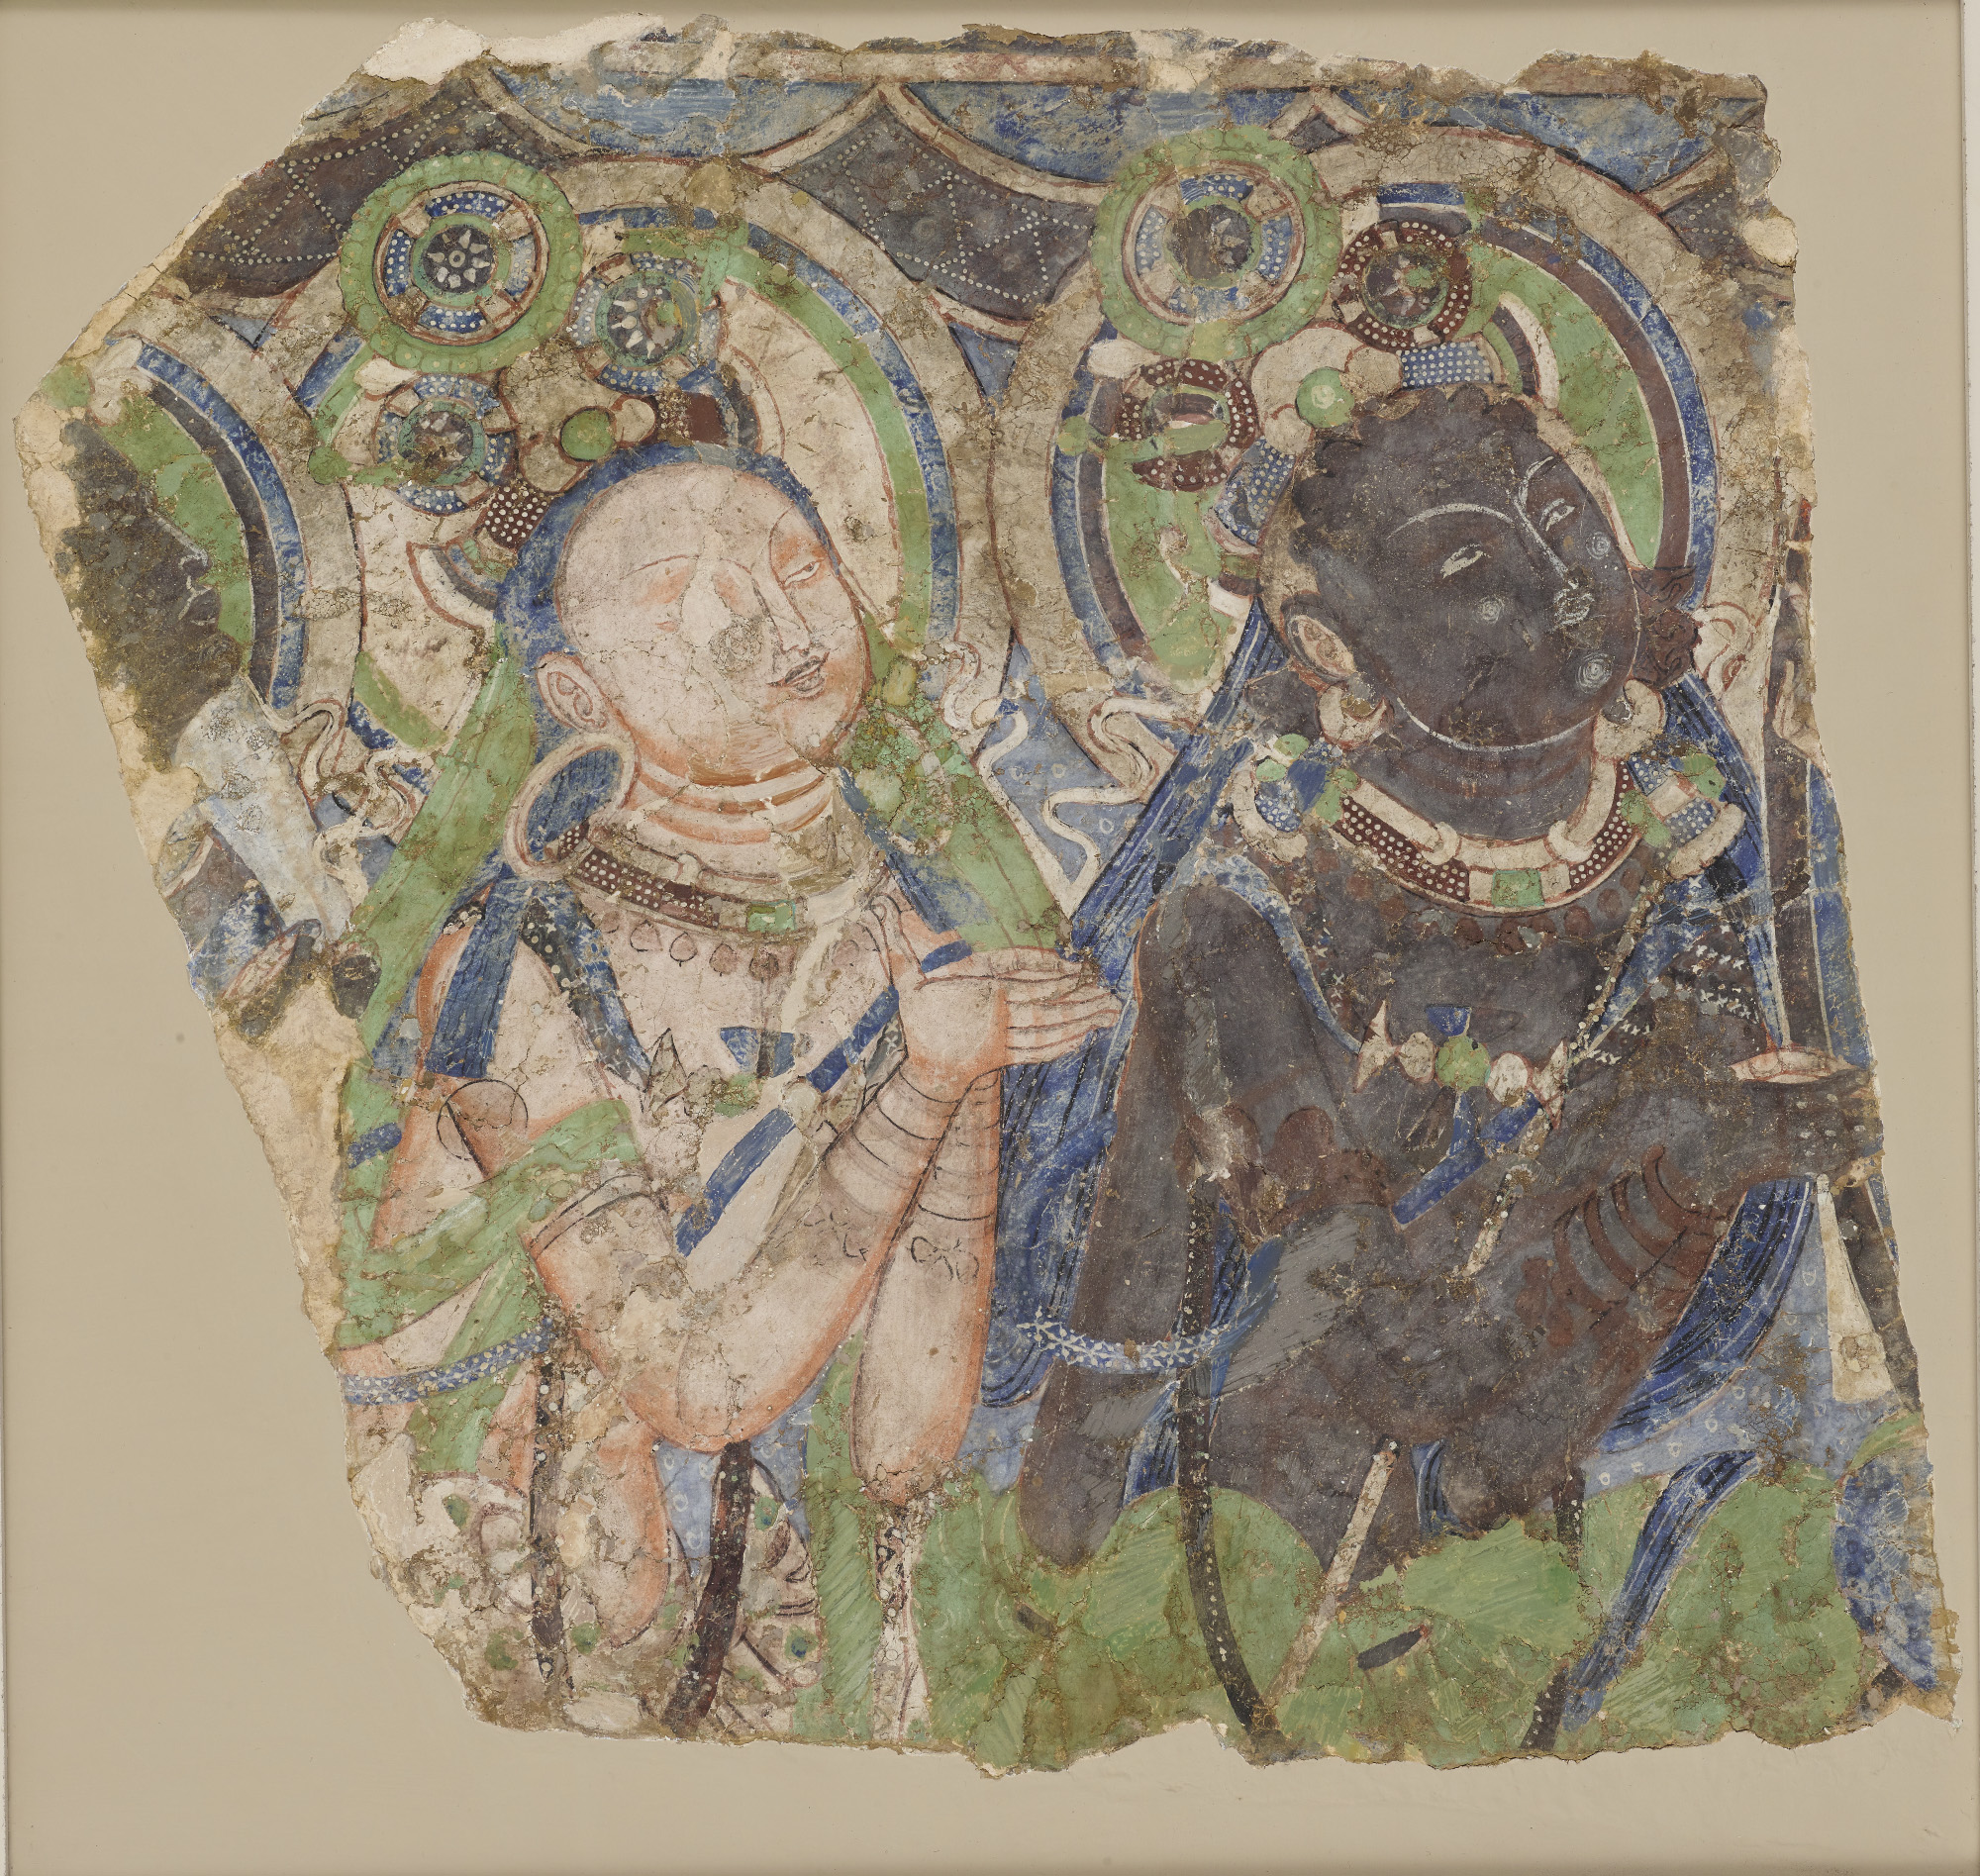 Idp newsletter issue no 4950 fragment of a wall painting showing bodhisattvas now in the freer sackler galleries probably from kucha see p5 c4th6th c arthur m sackler gallery fandeluxe Choice Image